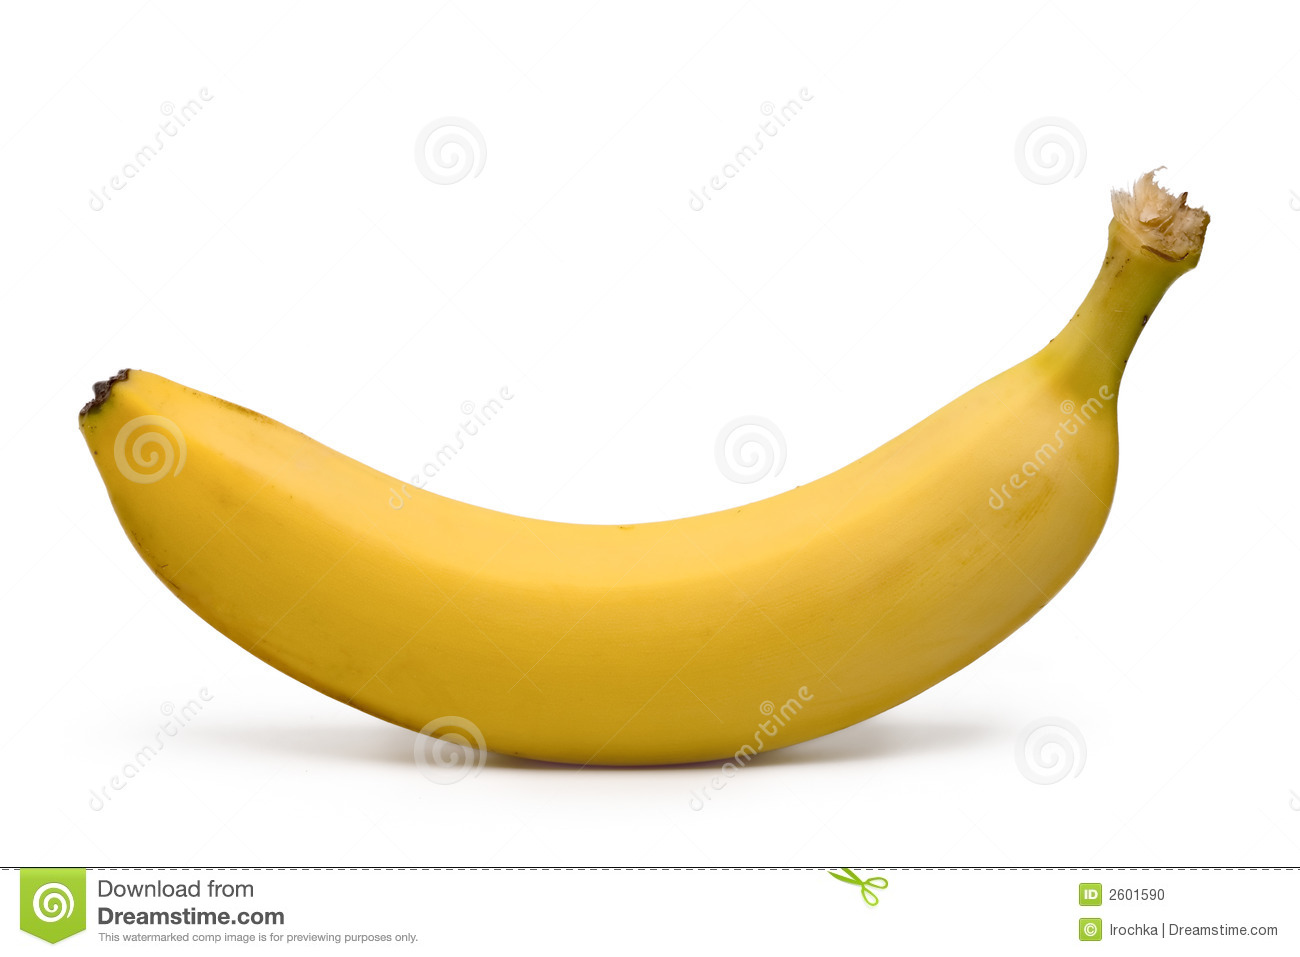 closeup of a yellow banana isolated on white.